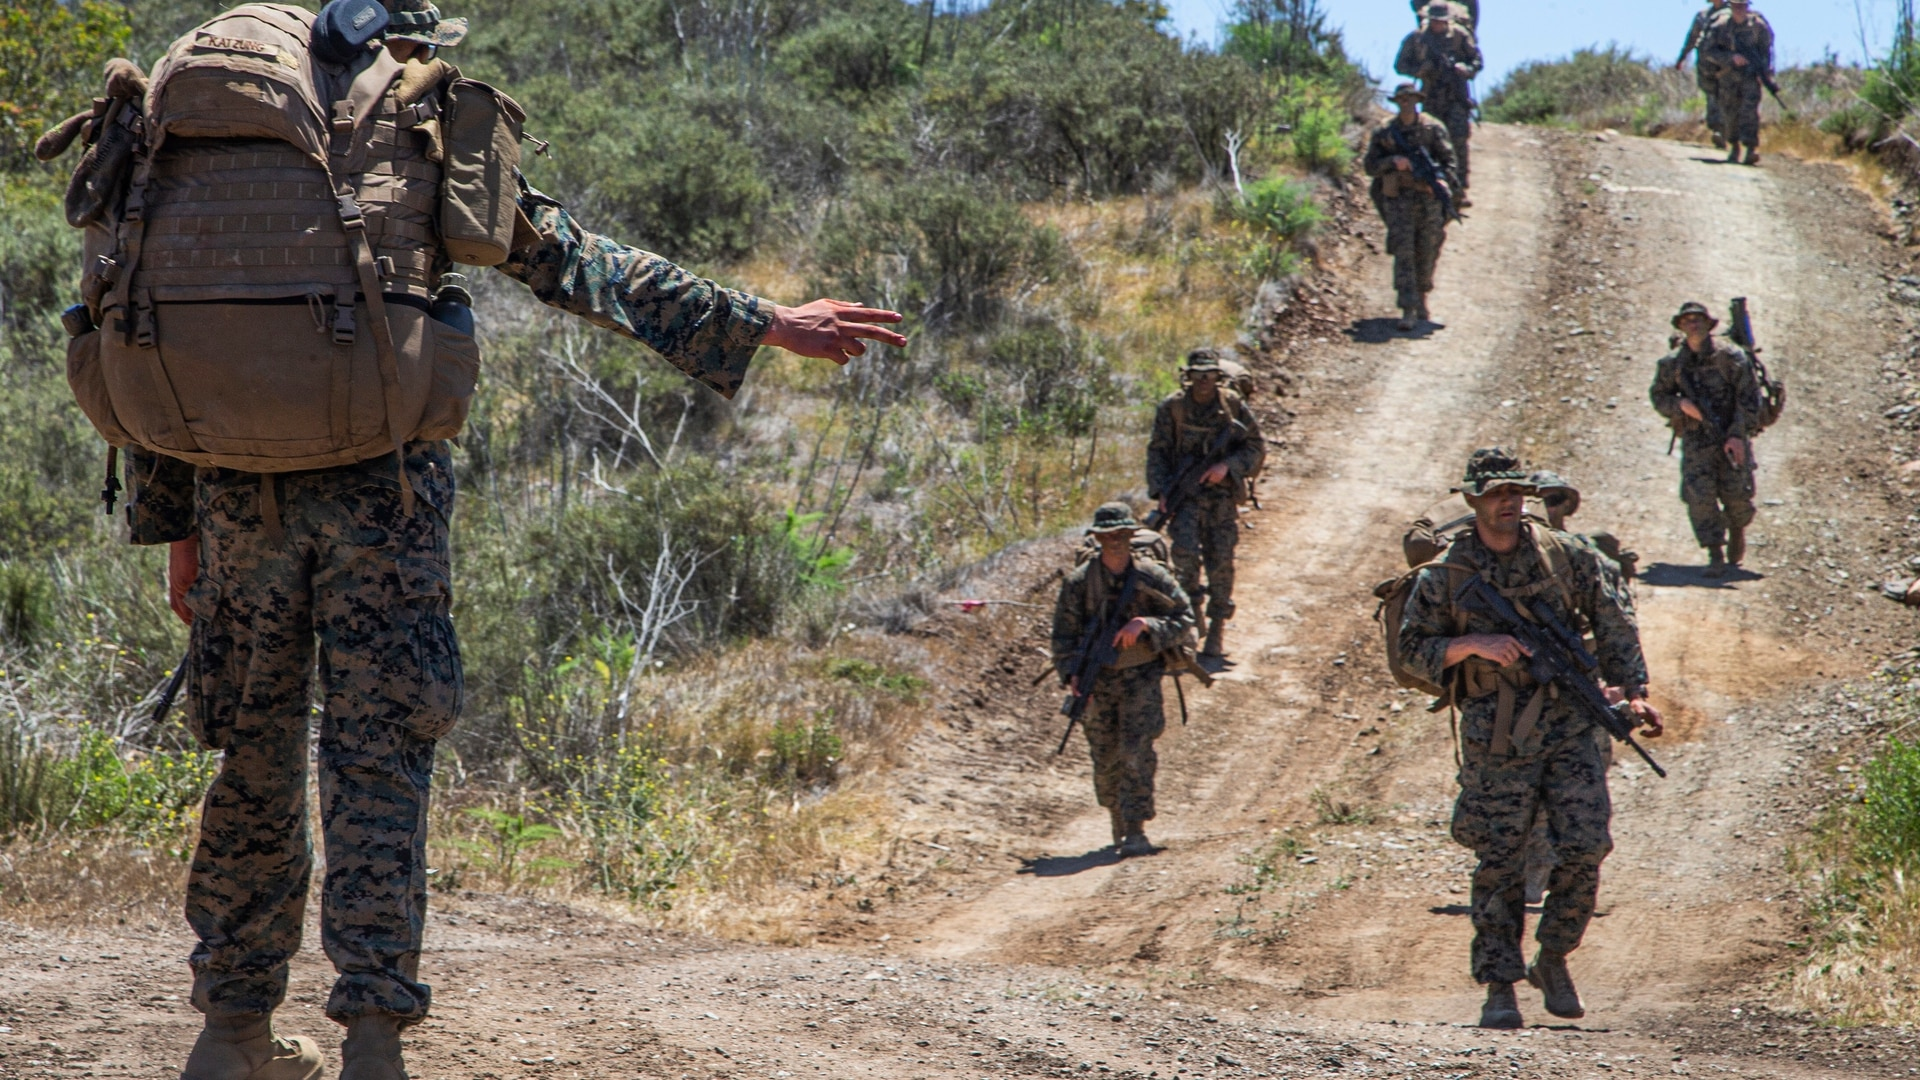 A squad from Alpha company tactically moves from station to station as part of the capstone exercise for the Infantry Marine Course on Marine Corps Base Camp Pendleton, California, April 29. (Sgt. Jeremy Laboy/Marine Corps)